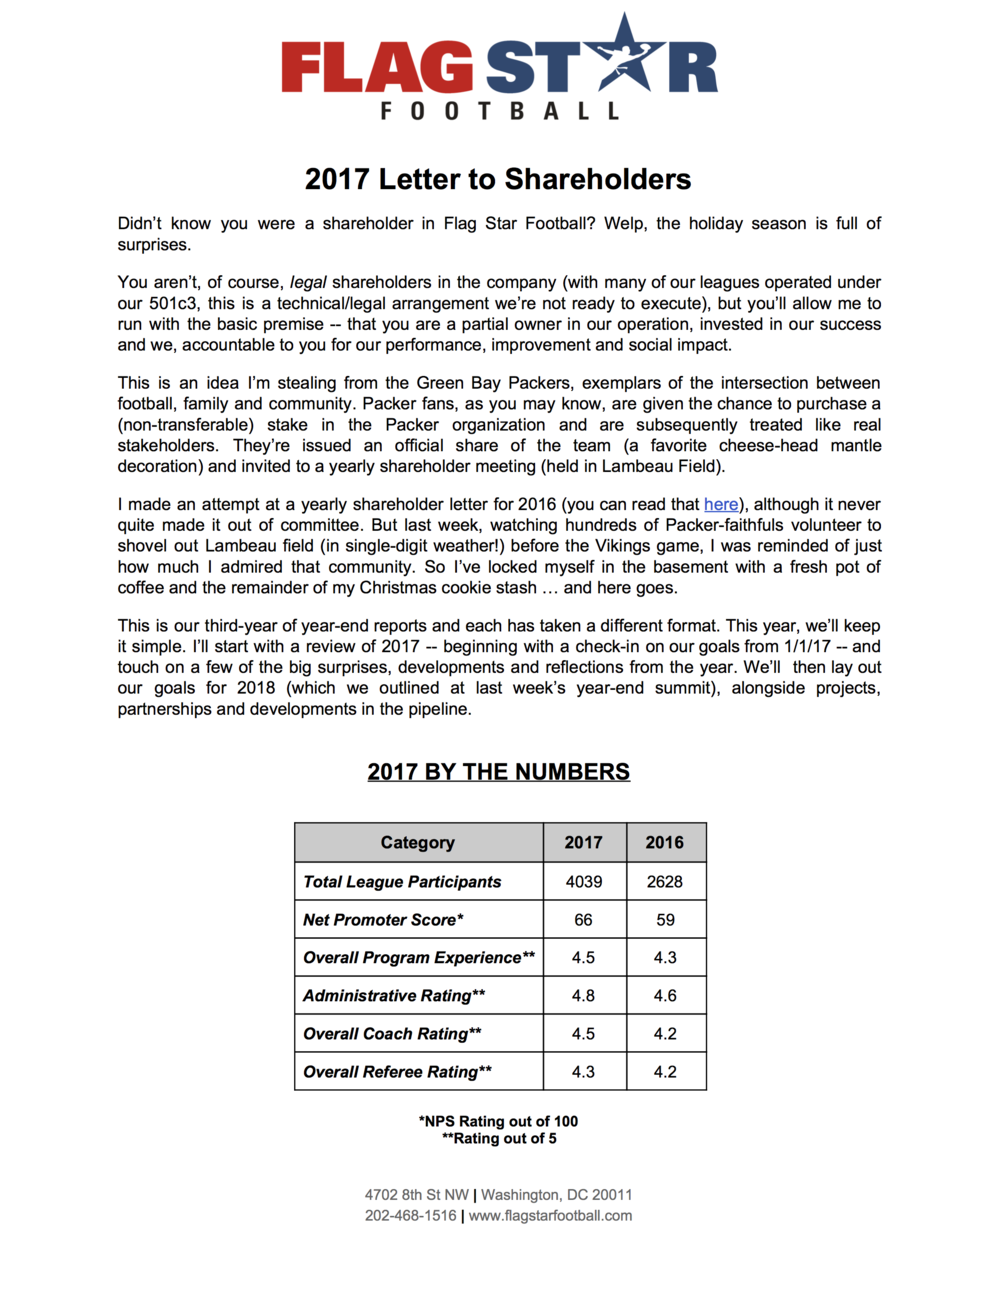 2017 Letter to Shareholders (1).png